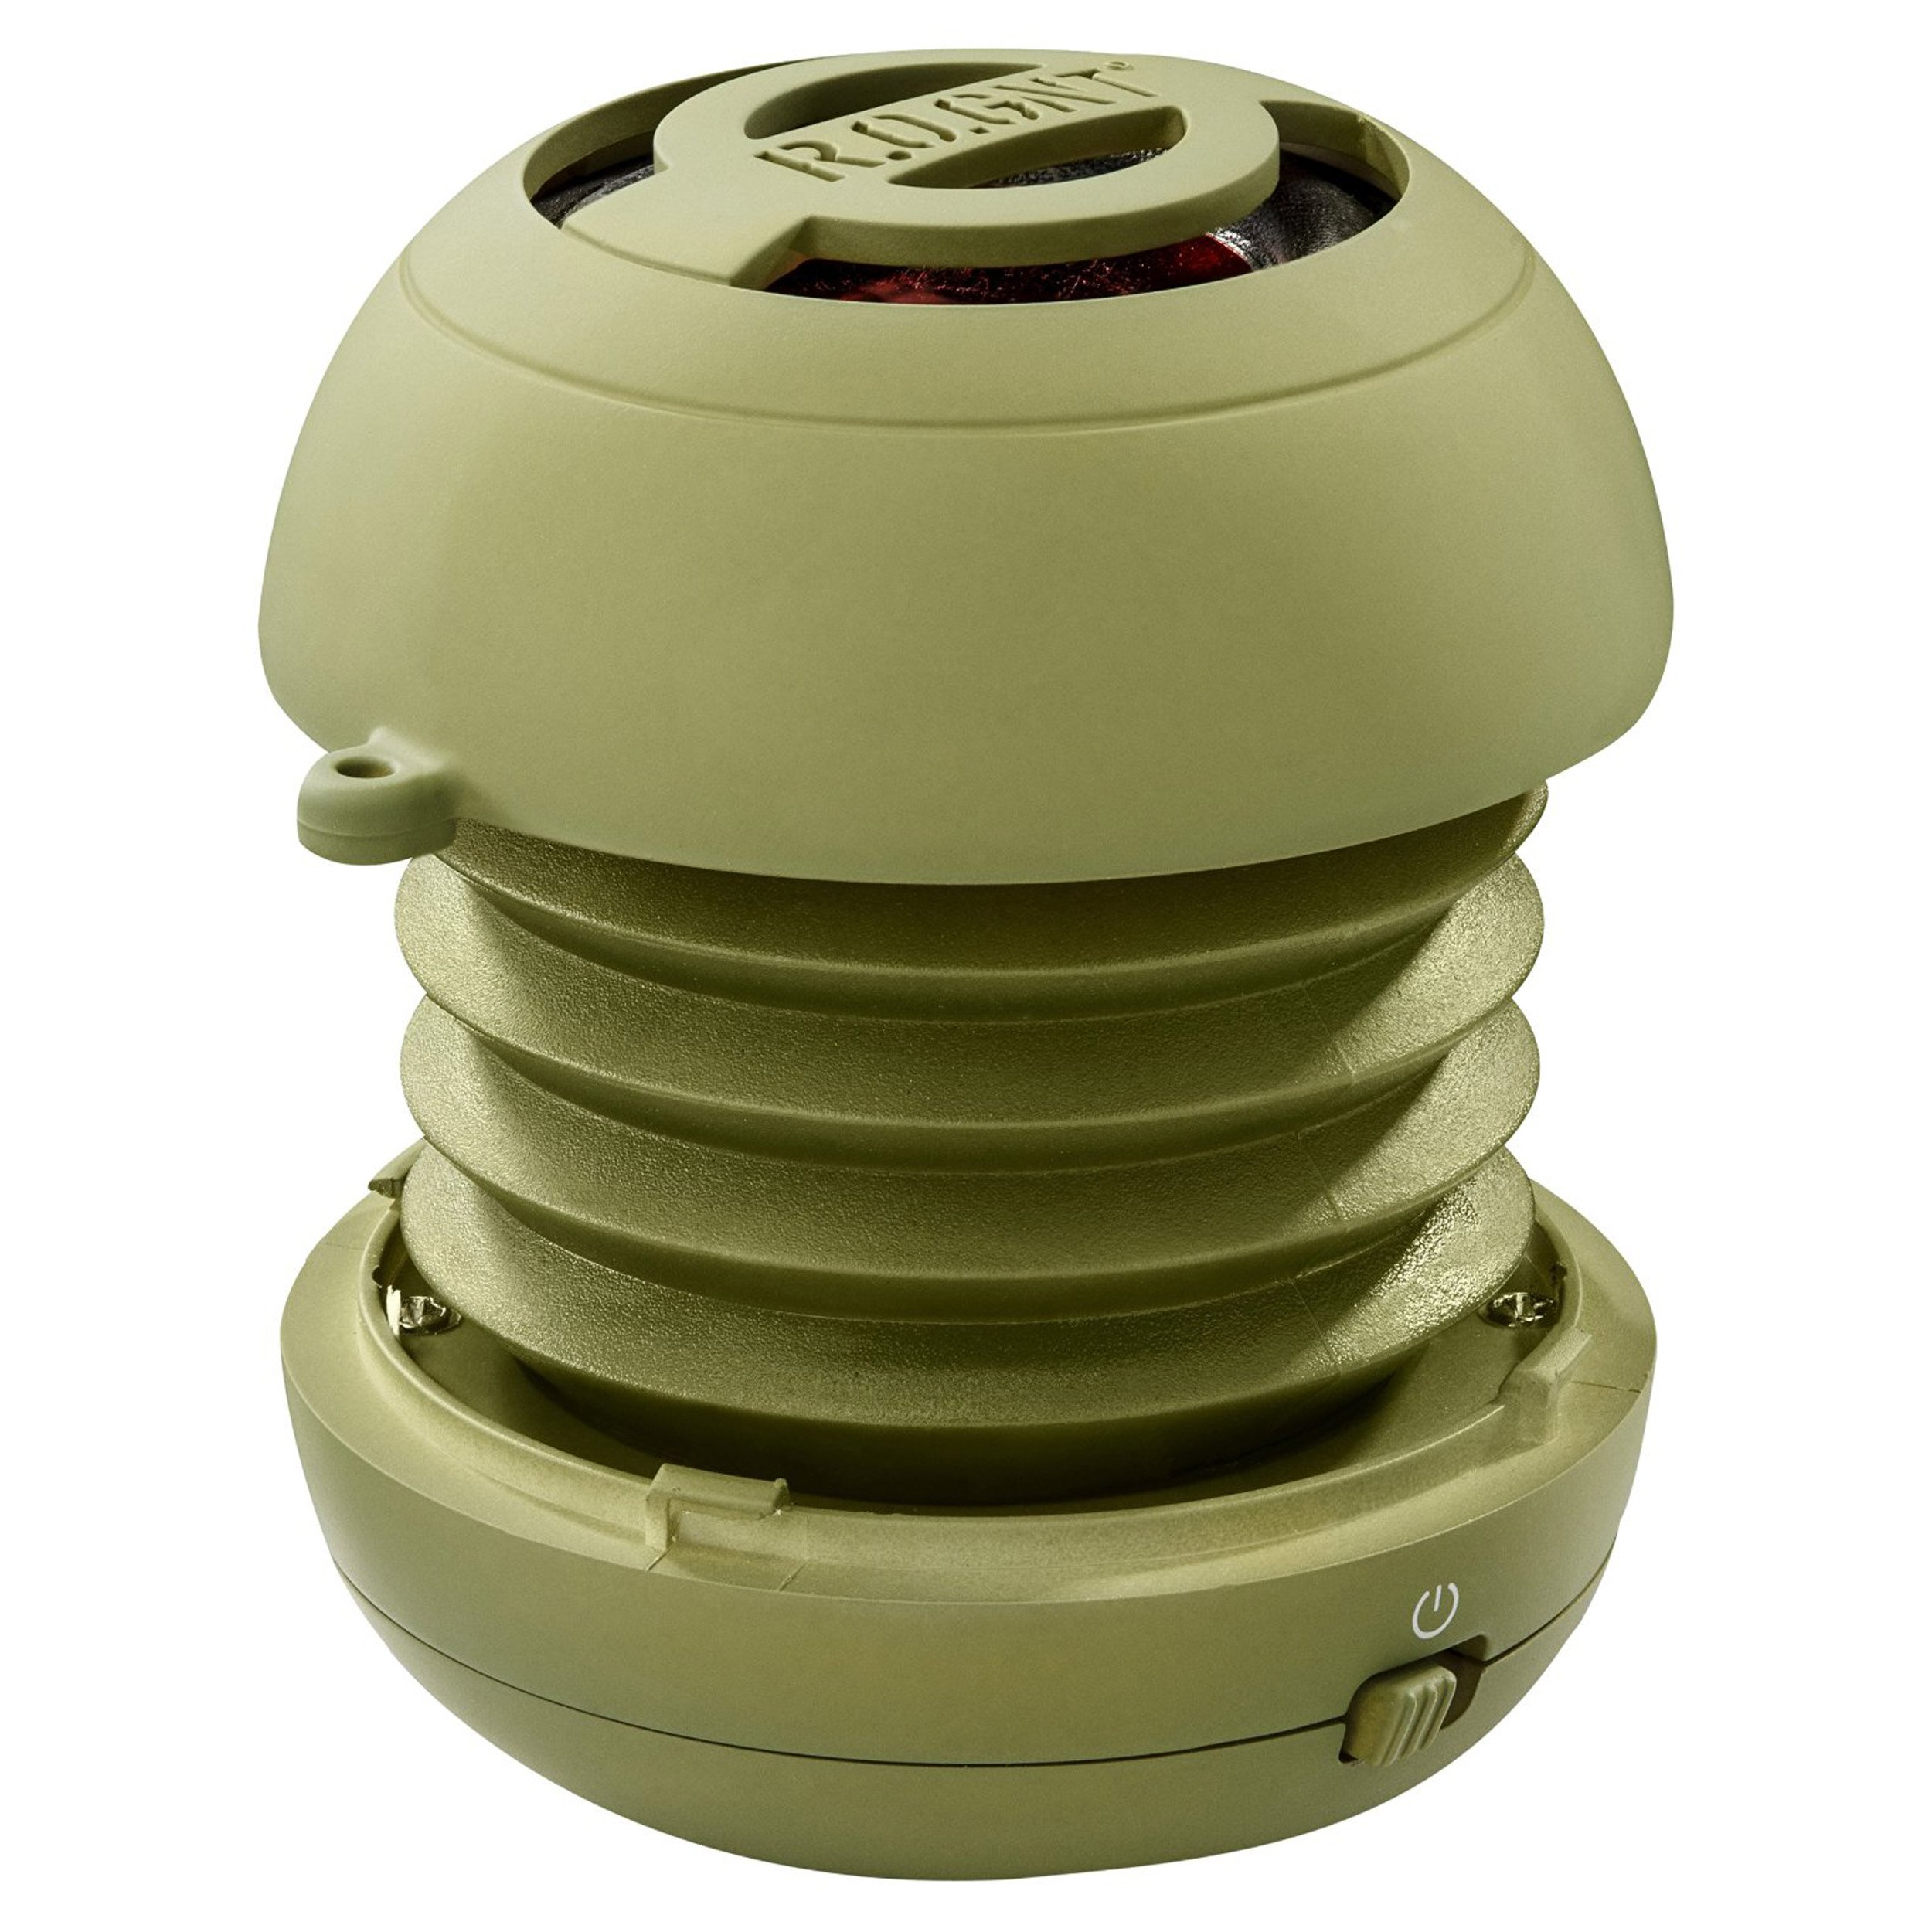 R.O.GNT Portable In-Line Wired MP3 Capsule Speaker for mobile Devices, Smartphone, iPhone and Tablet, Laptop, Notebook (Wired, Capsule) (Olive)